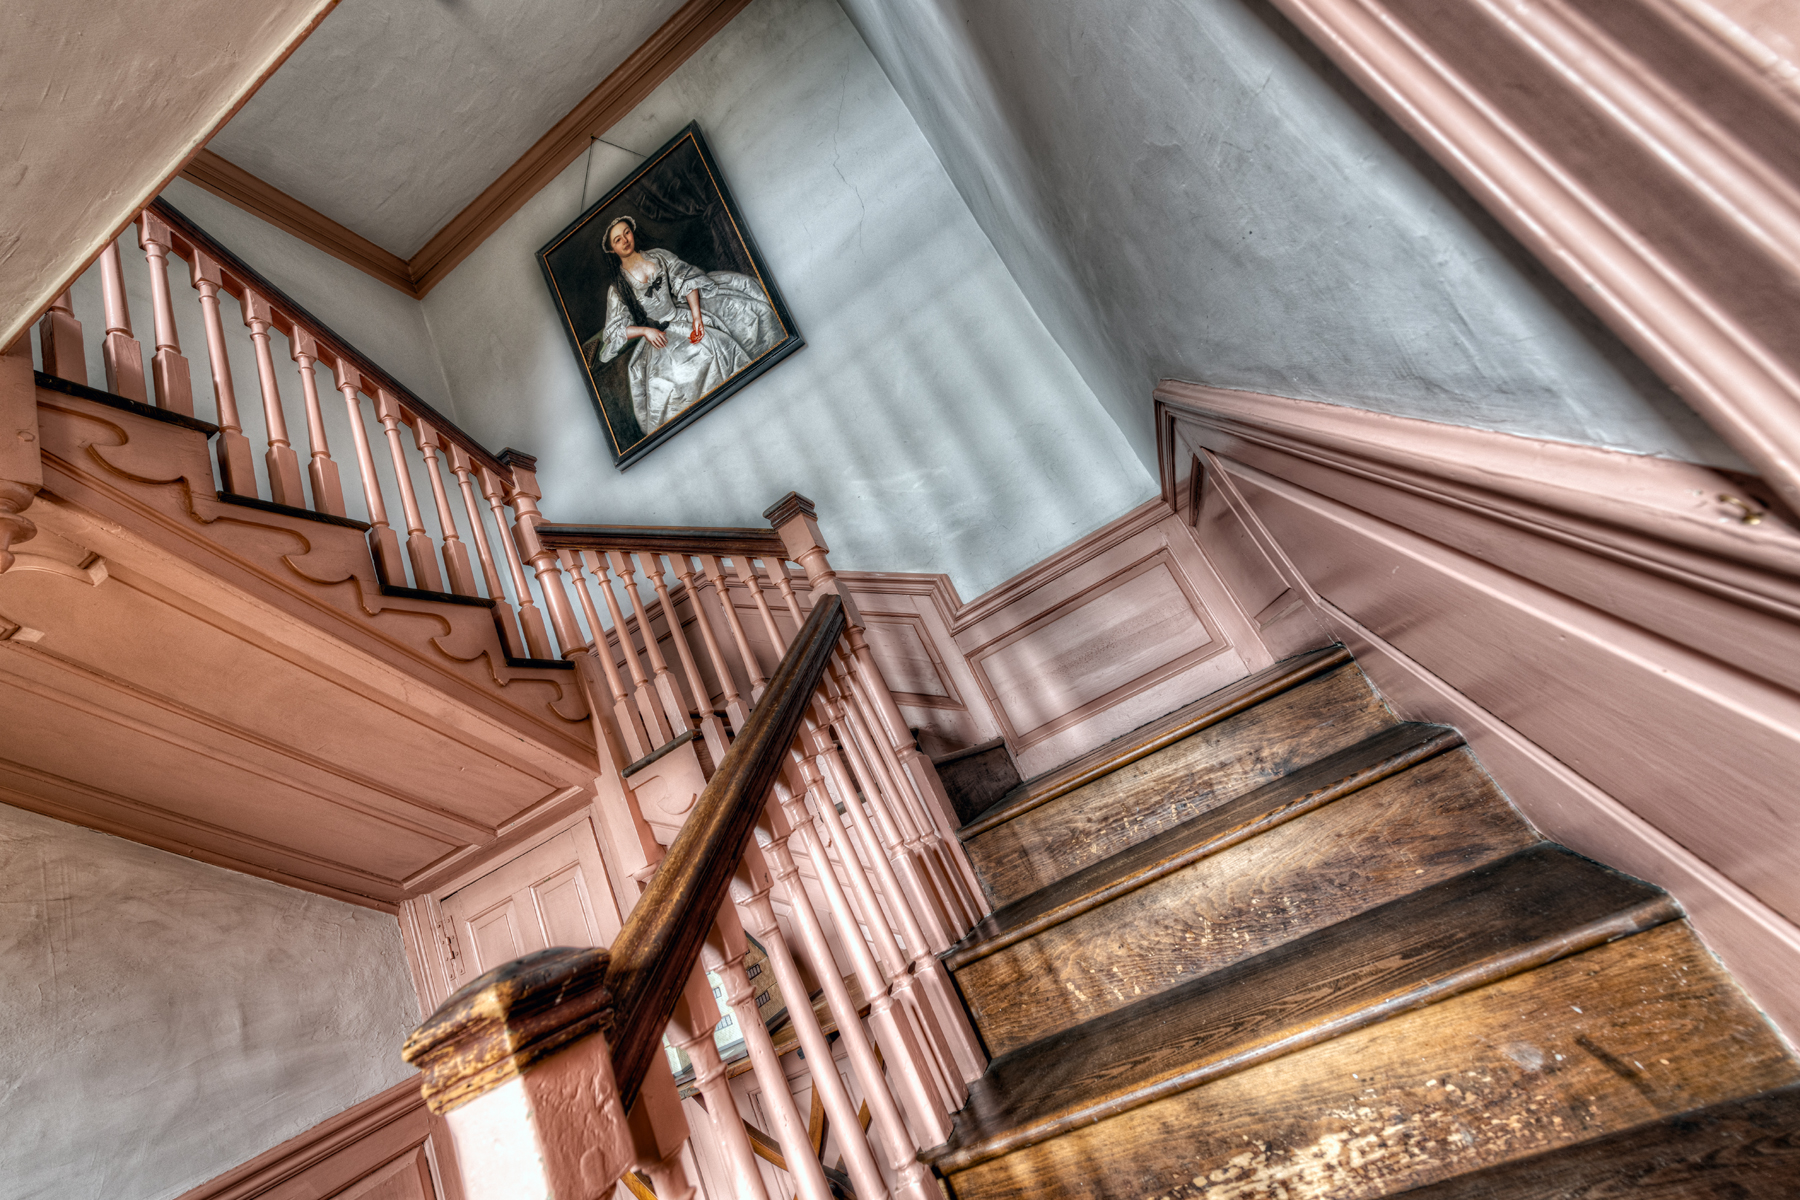 The staircase inside Smith's Castle where Elizabeth Singleton is said to have met her death. Photo by Frank Grace.